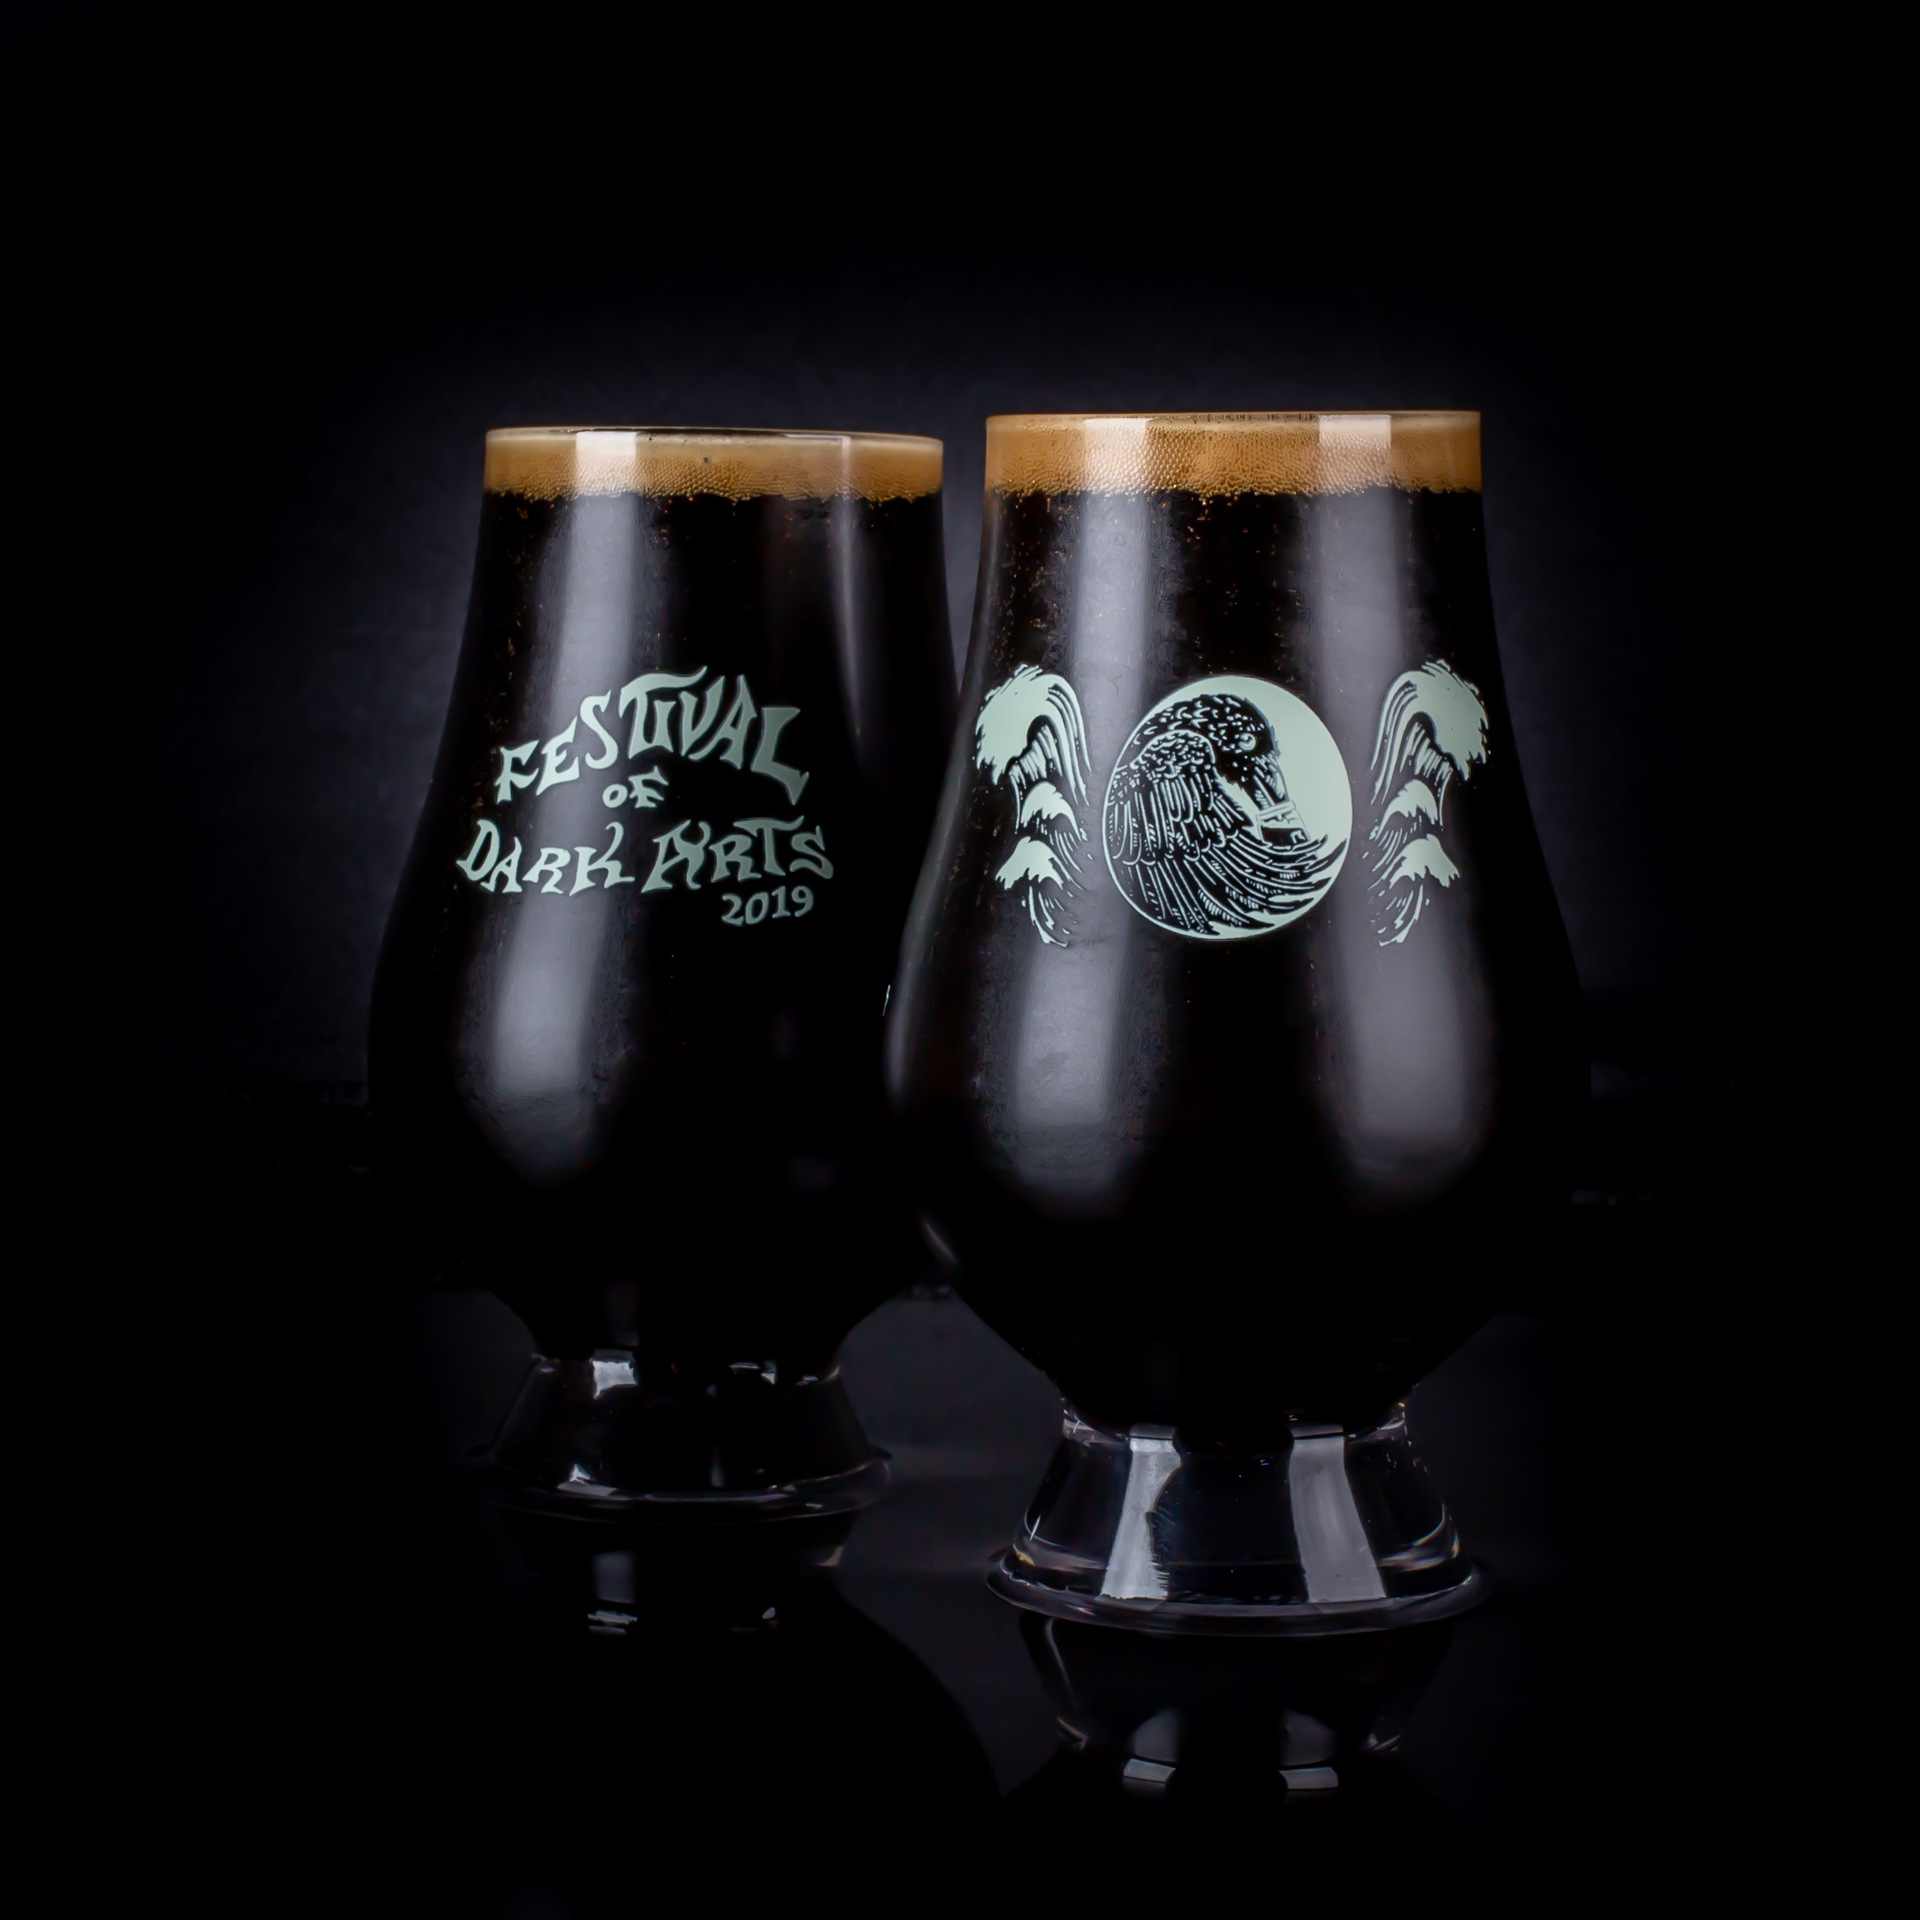 2019 Festival of Dark Arts Taster (image courtesy of Fort George Brewery)